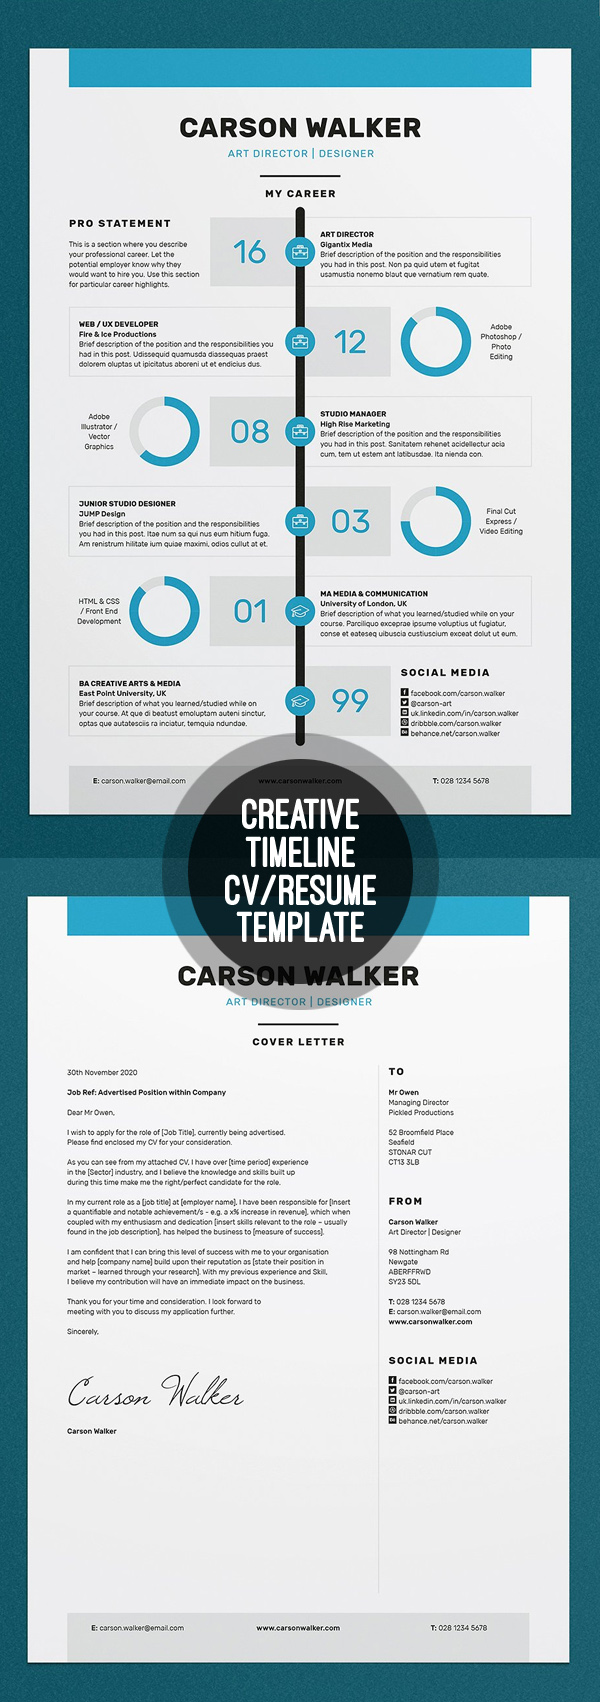 resume template 2017 free download